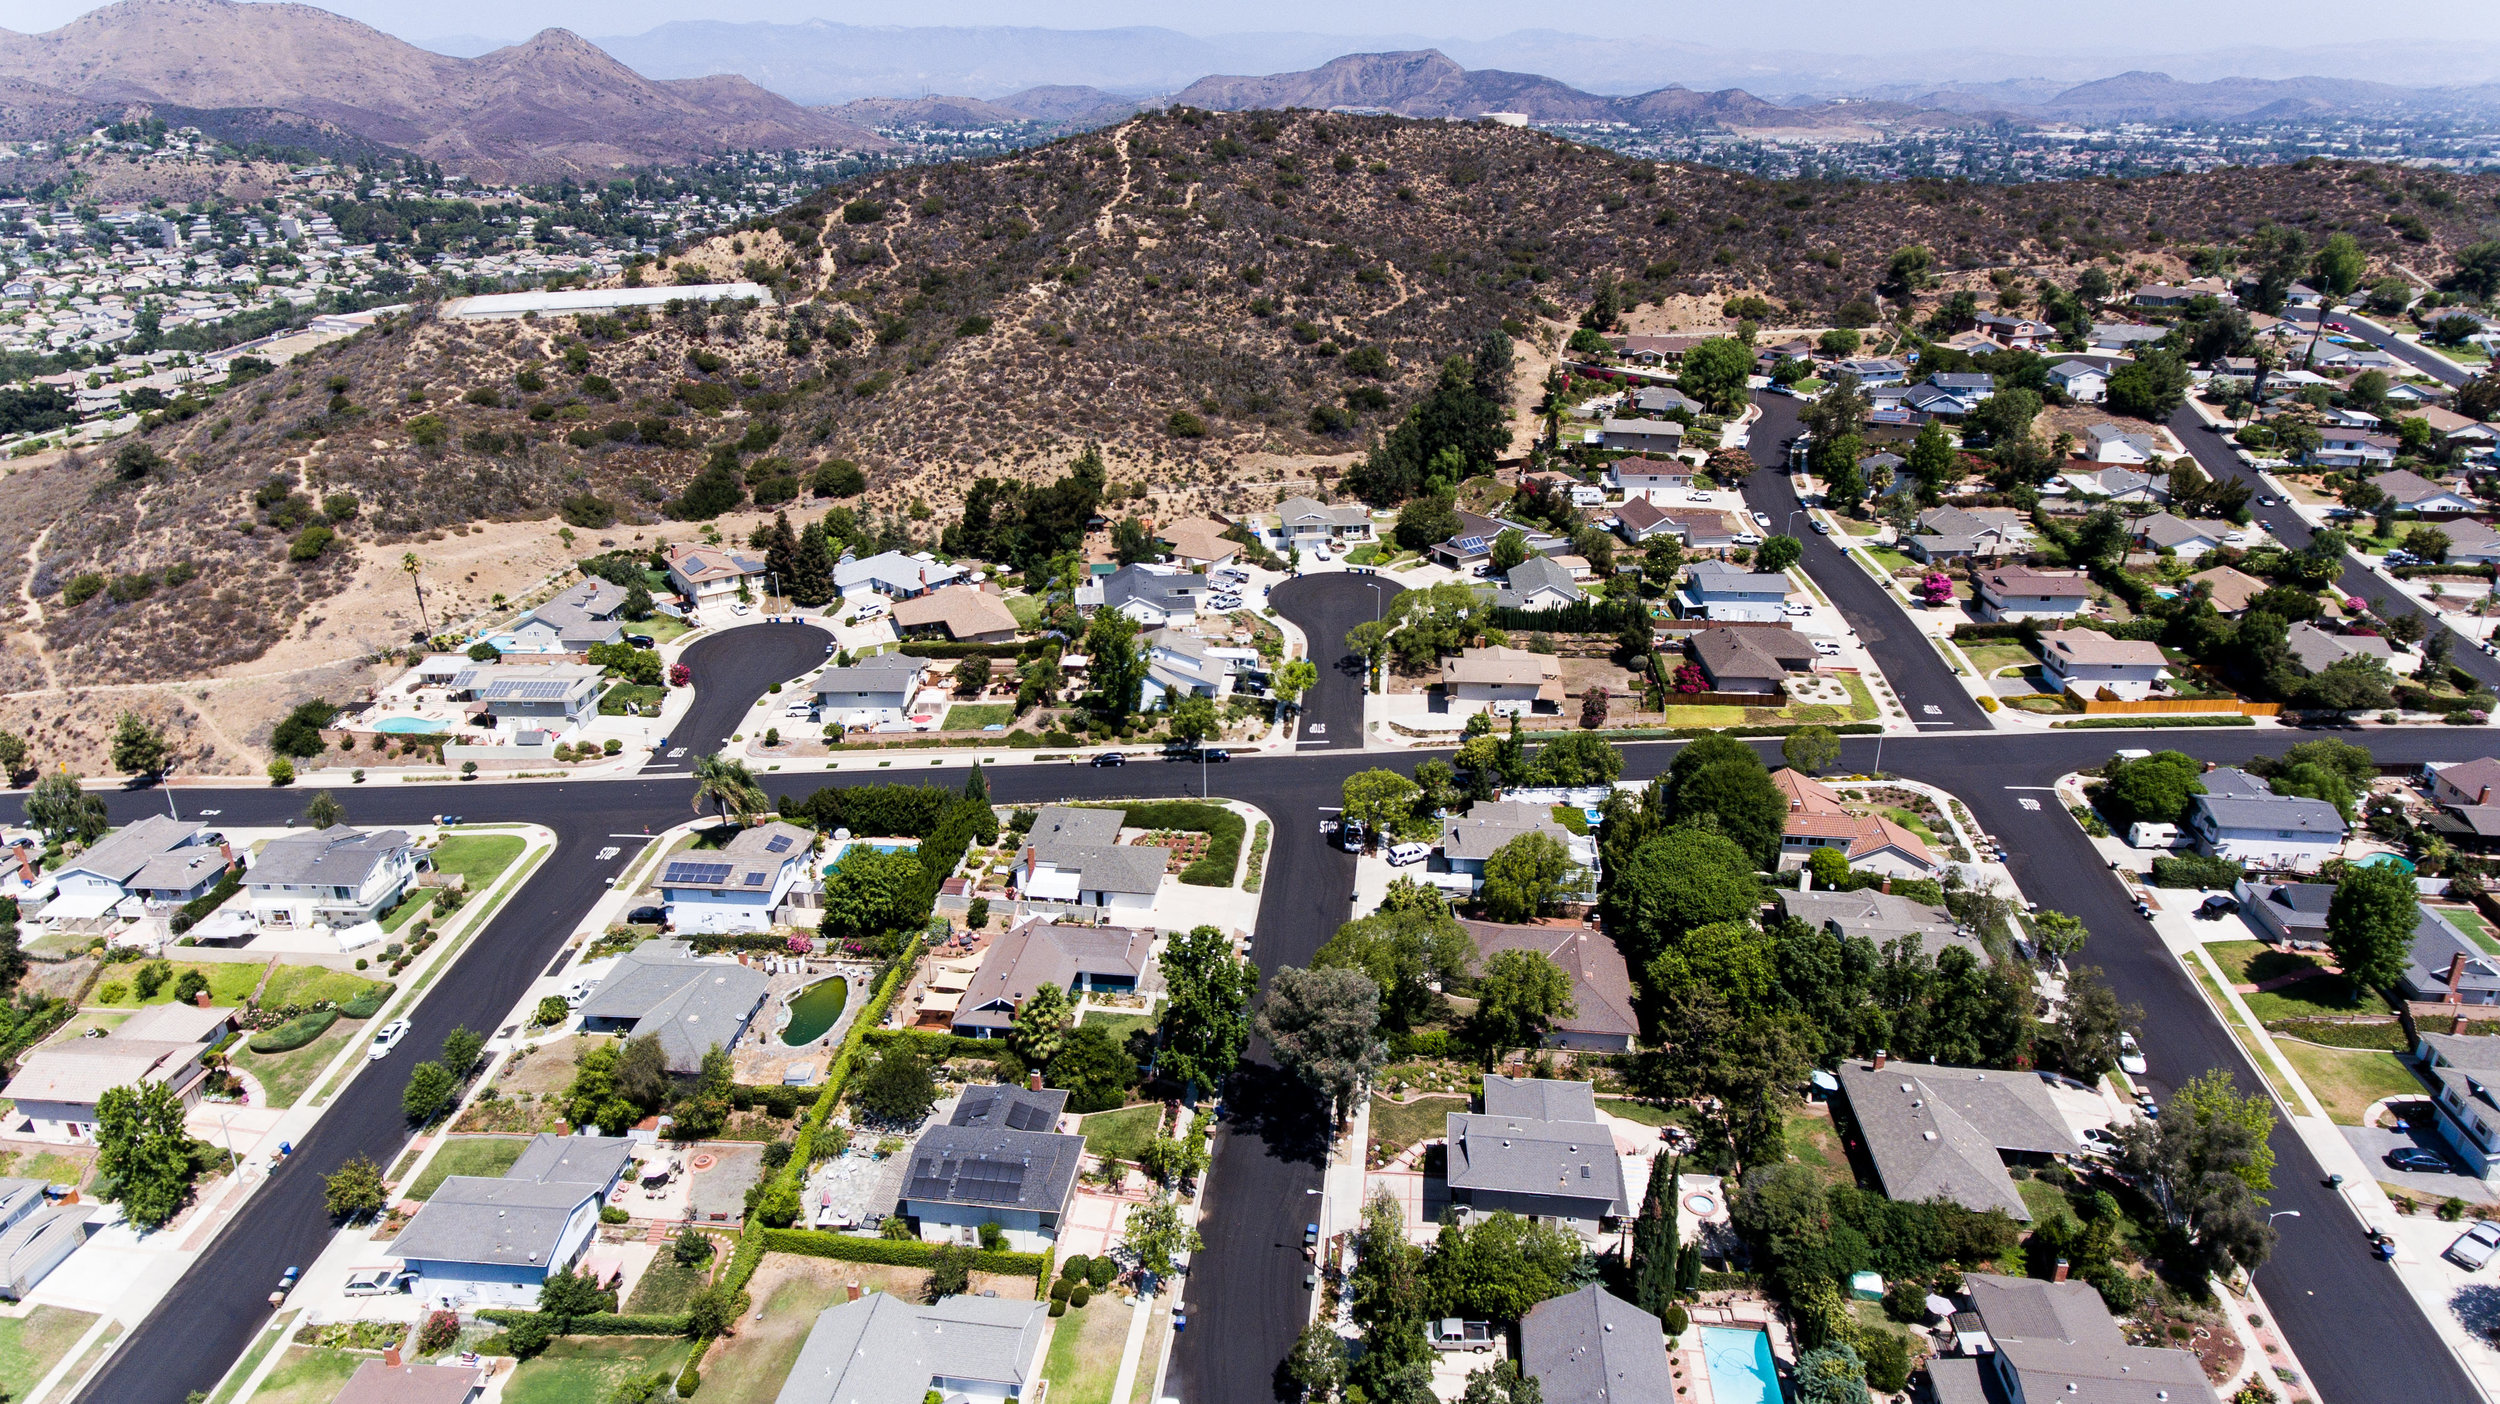 Thousand Oaks Residential Streets with Central Mix REAS (1).JPG